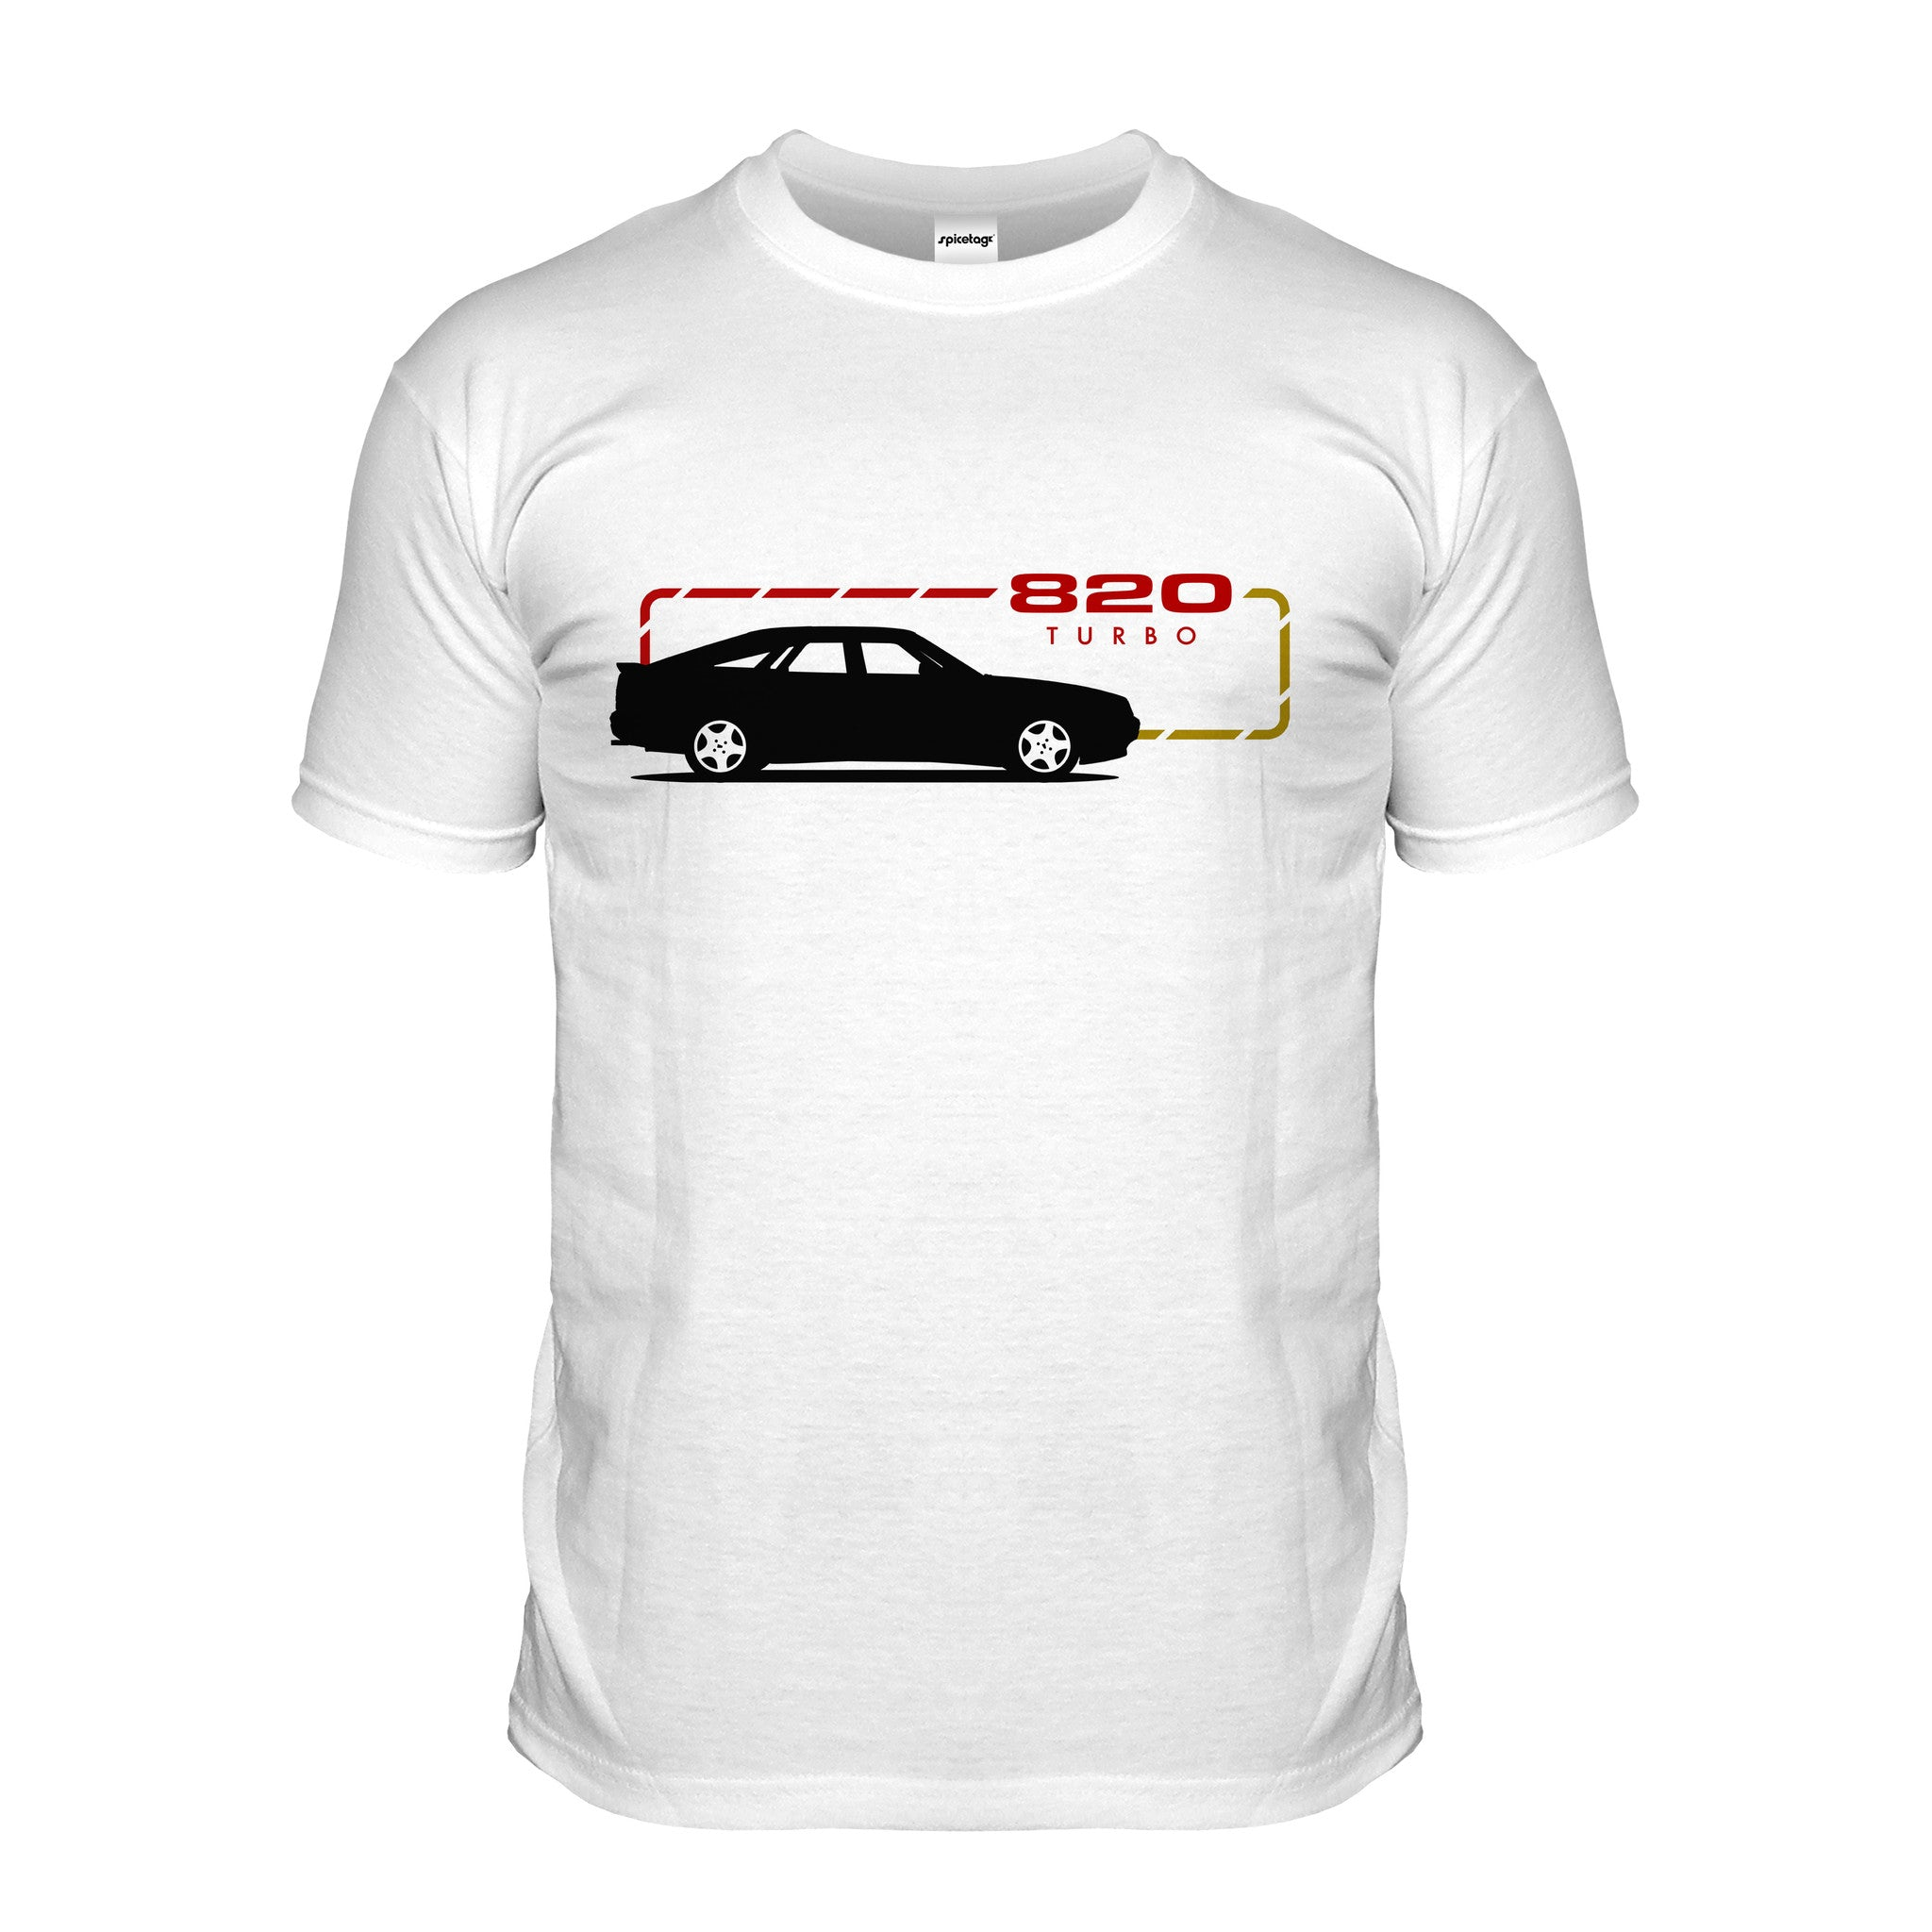 820 Turbo T-shirt